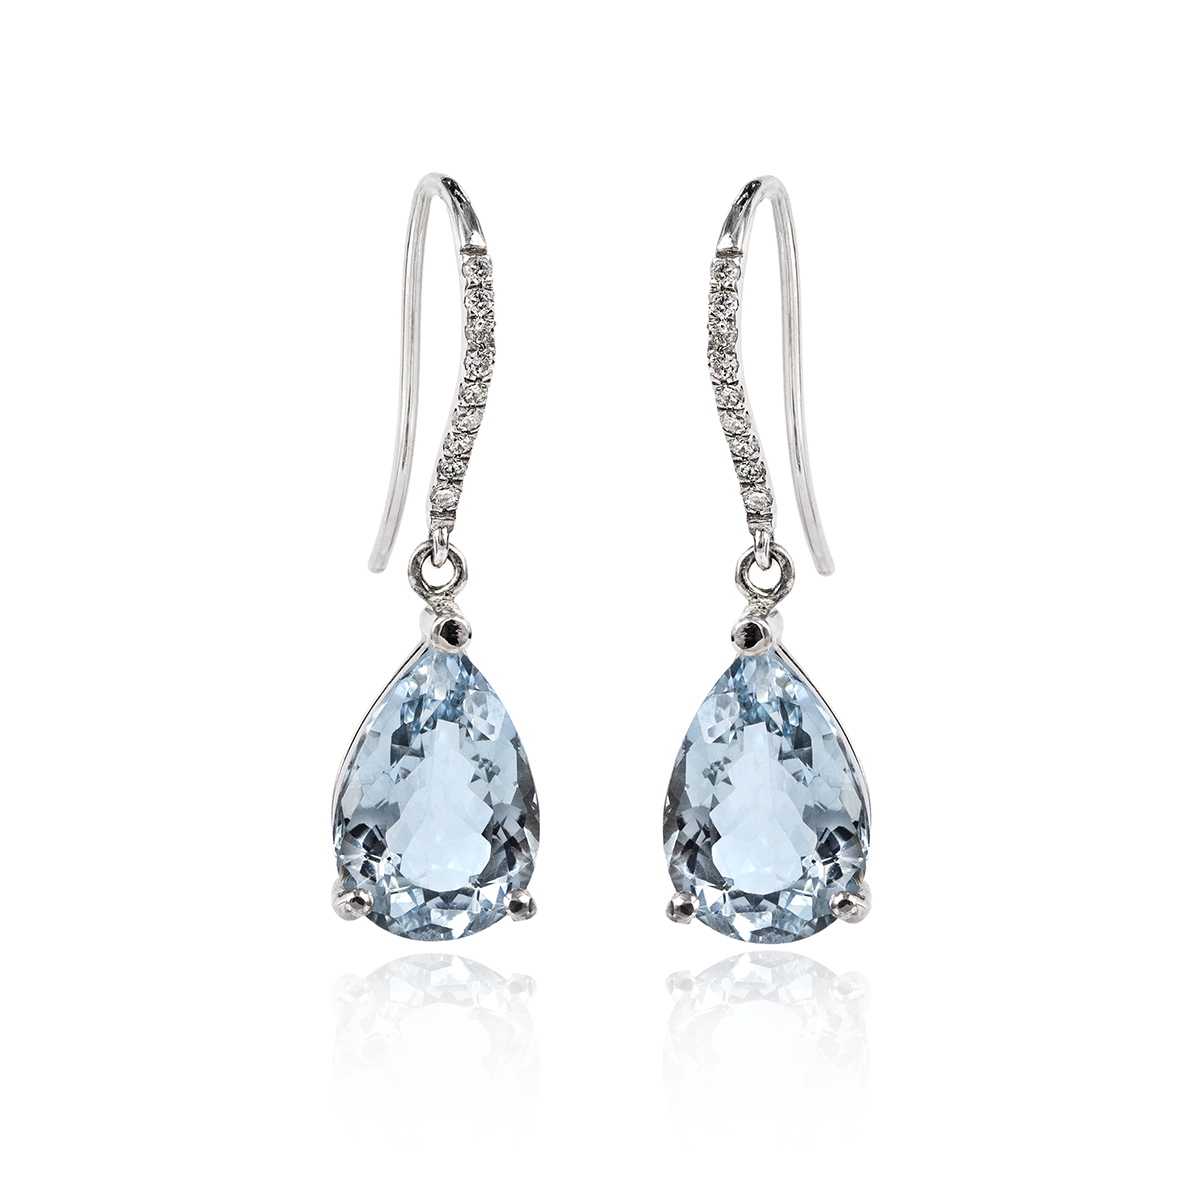 91de6a0b6fa47 18Ct White Gold Pear Shape Aquamarine And Diamod Drop Earrings 2=4.73Ct  18=0.10Ct